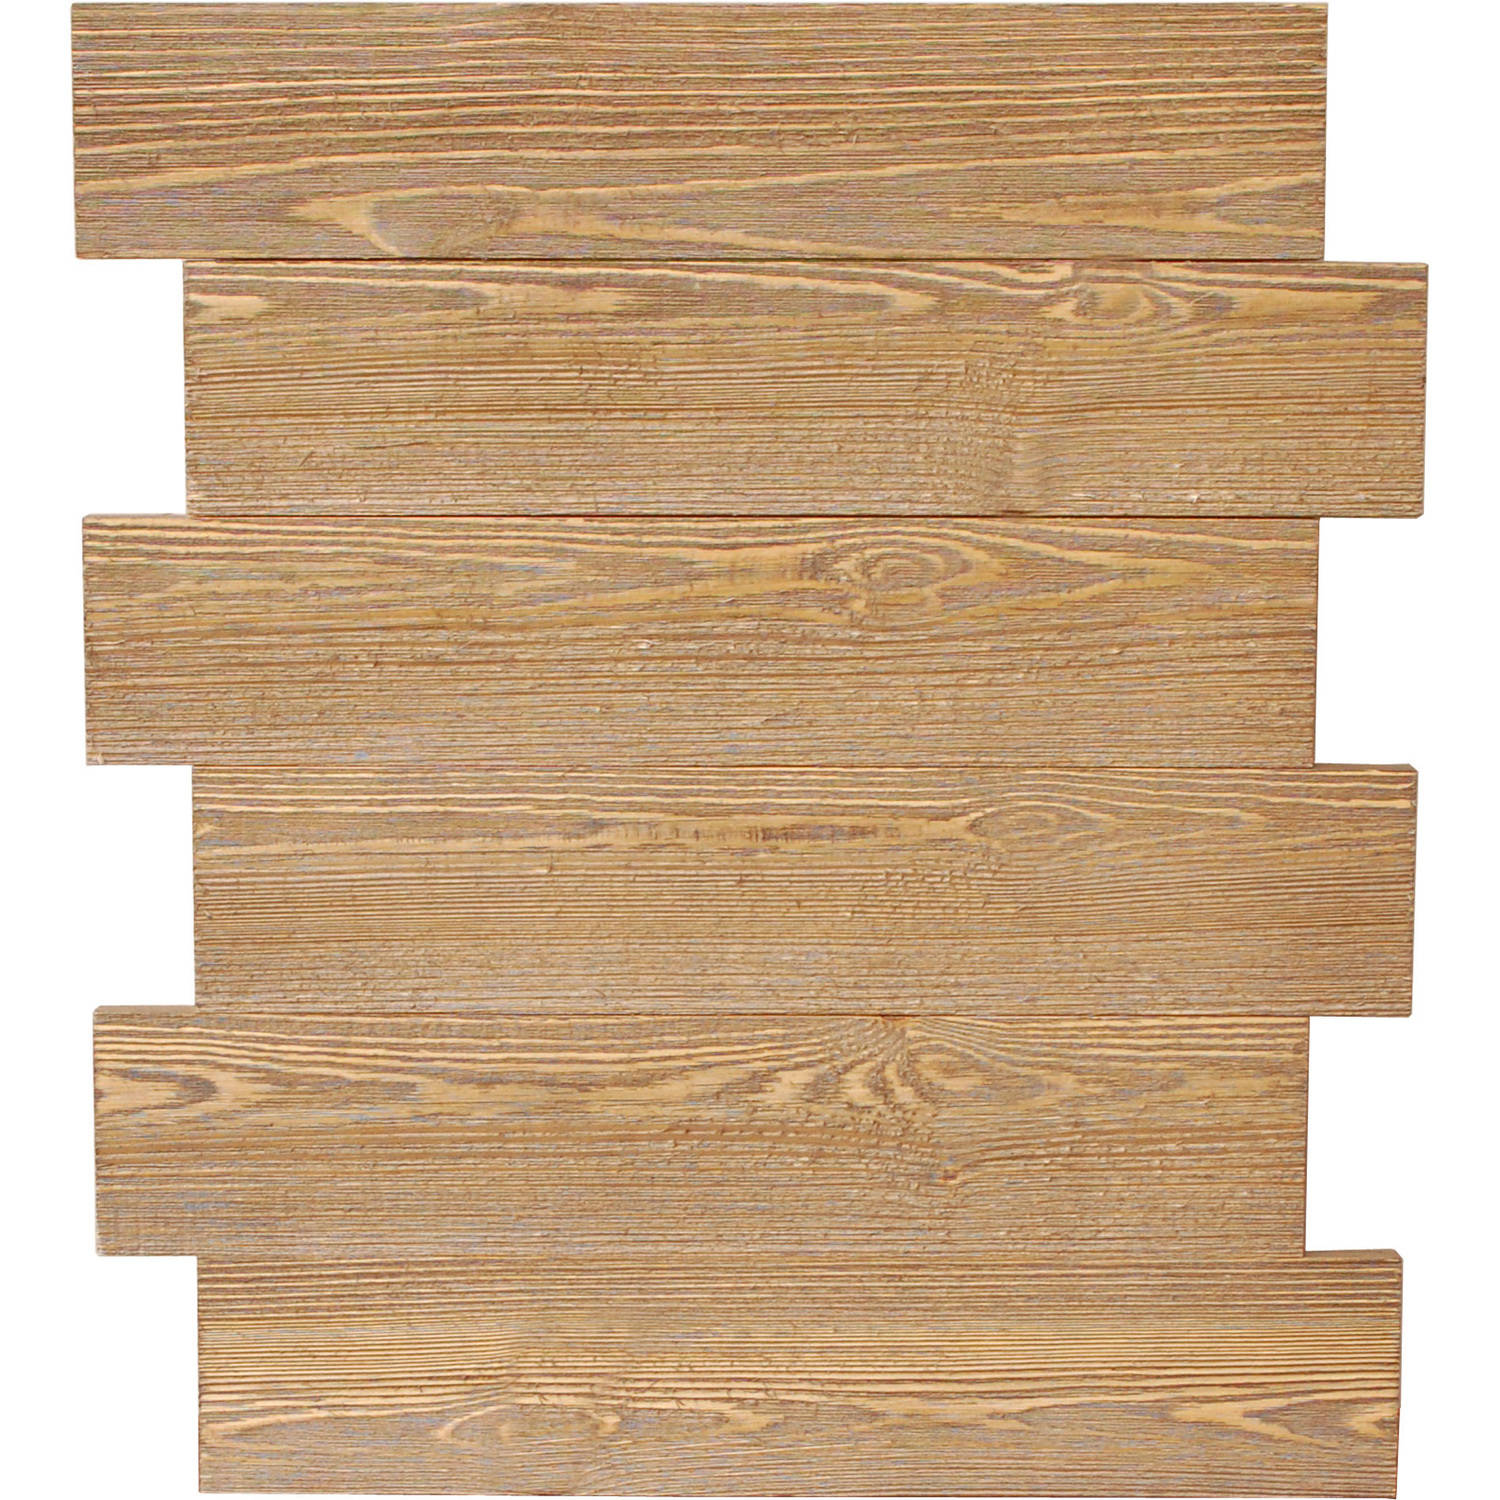 "Jillibean Mix Media 16"" x 20"" Offset Panel Rustic"